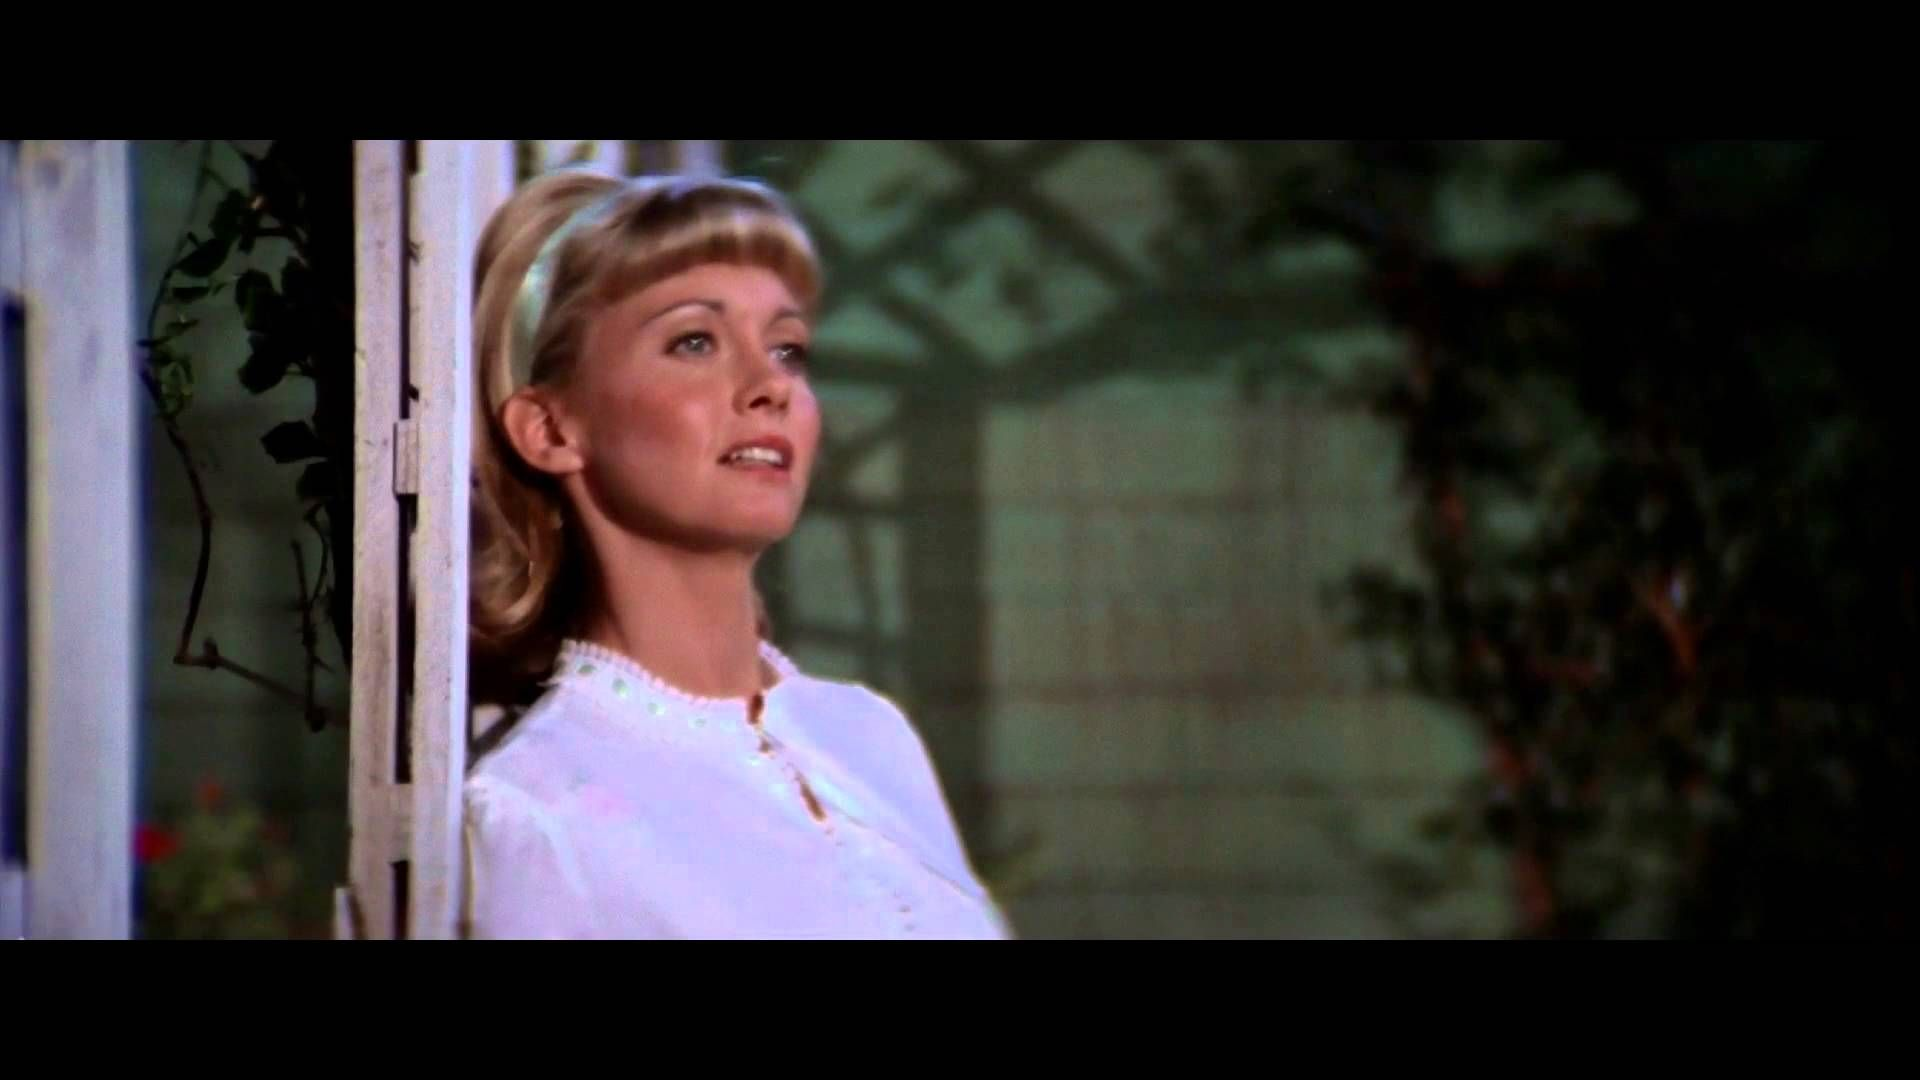 Liedjes Van Vroeger Olivia Newton John Hopelessly Devoted To You Hd Een Van